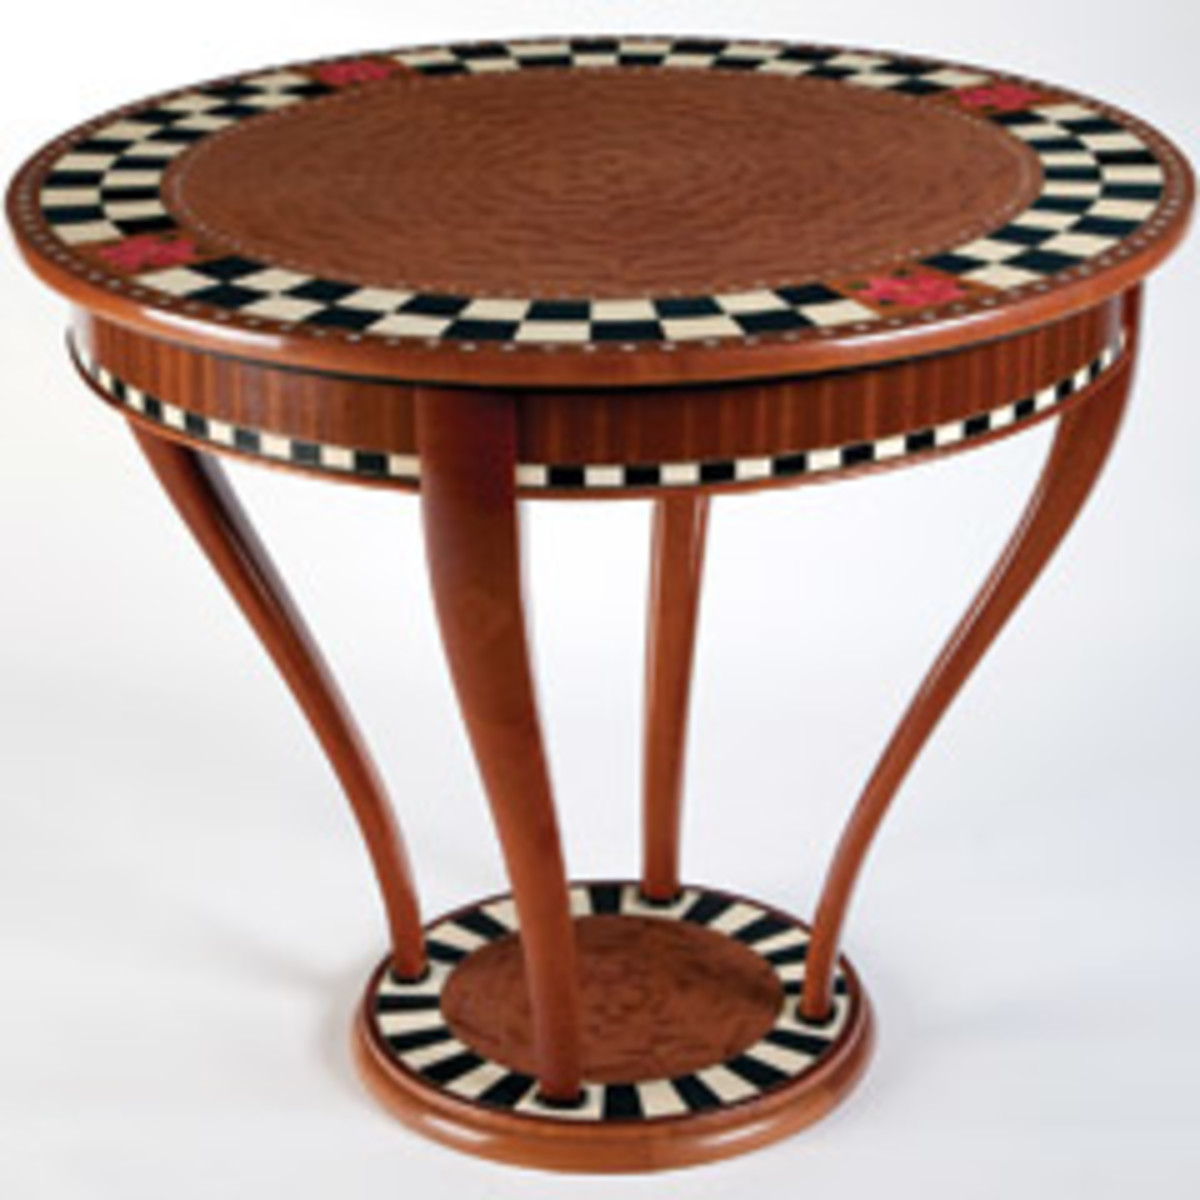 This display table made of quilted makore, mahogany, sapele and holly by Tom Christenson of Bakersfield, Calif., won a veneering/marquetry award at this year's Design in Wood competition held by the San Diego Fine Woodworkers Association.